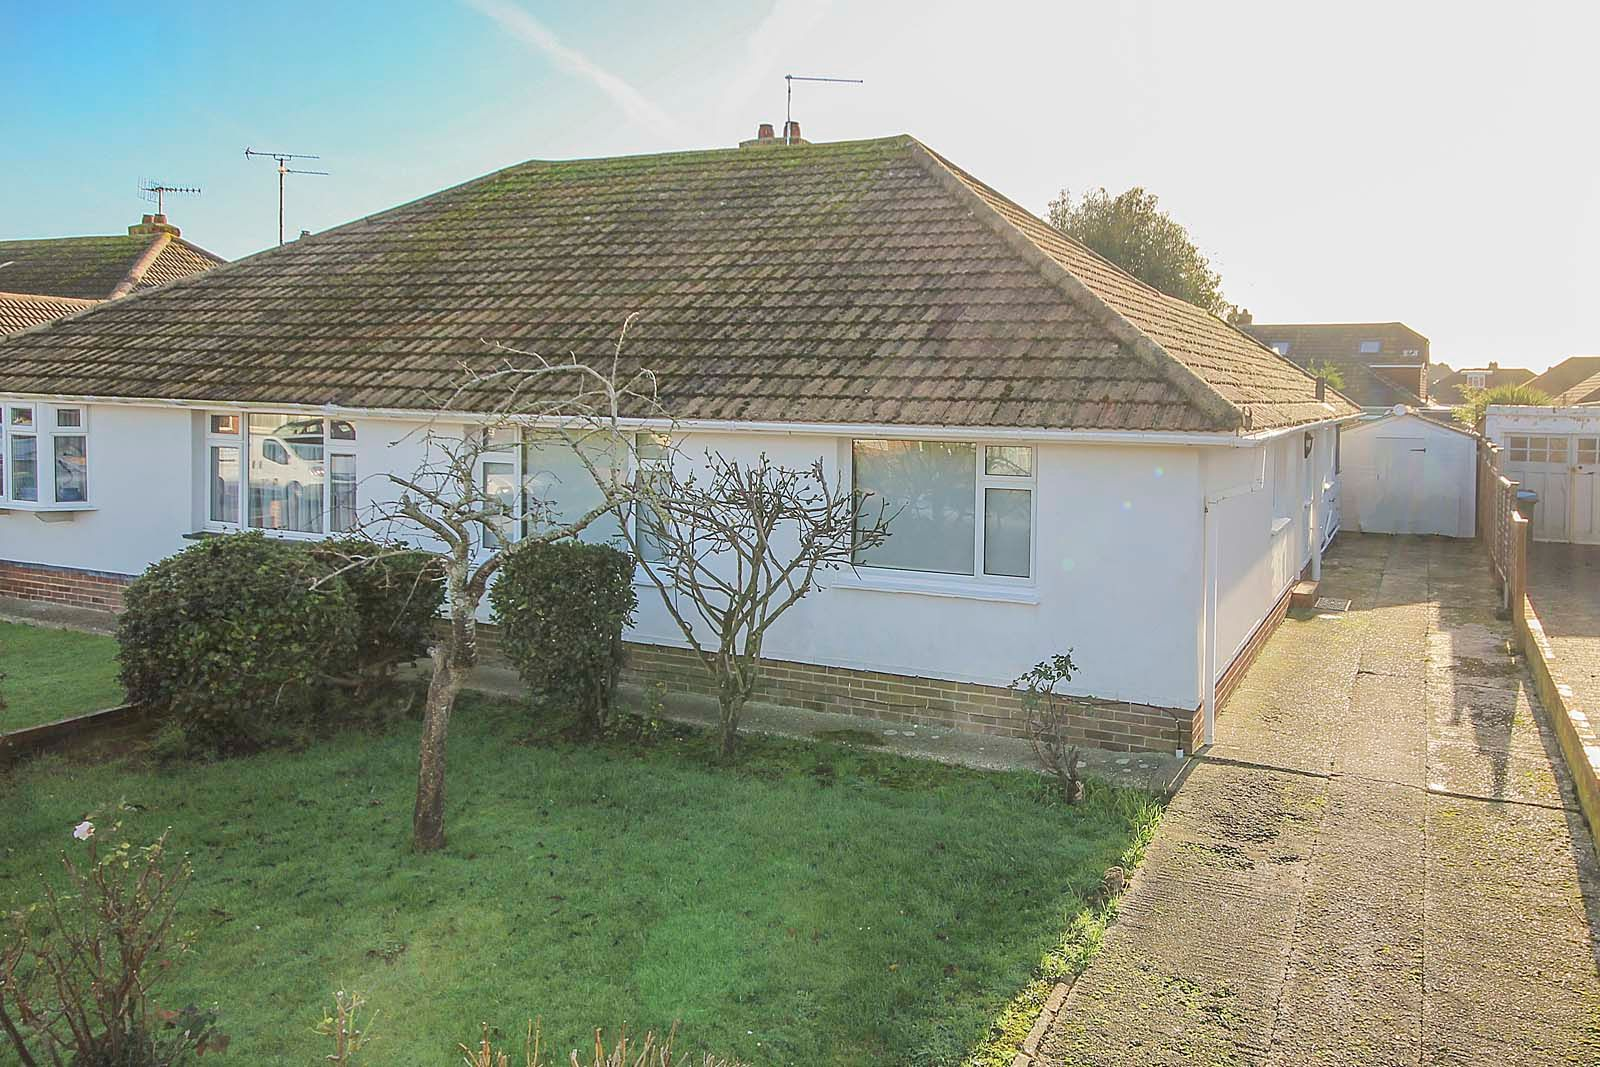 3 bed bungalow for sale in Hillview Crescent COMP MAY 2019 - Property Image 1